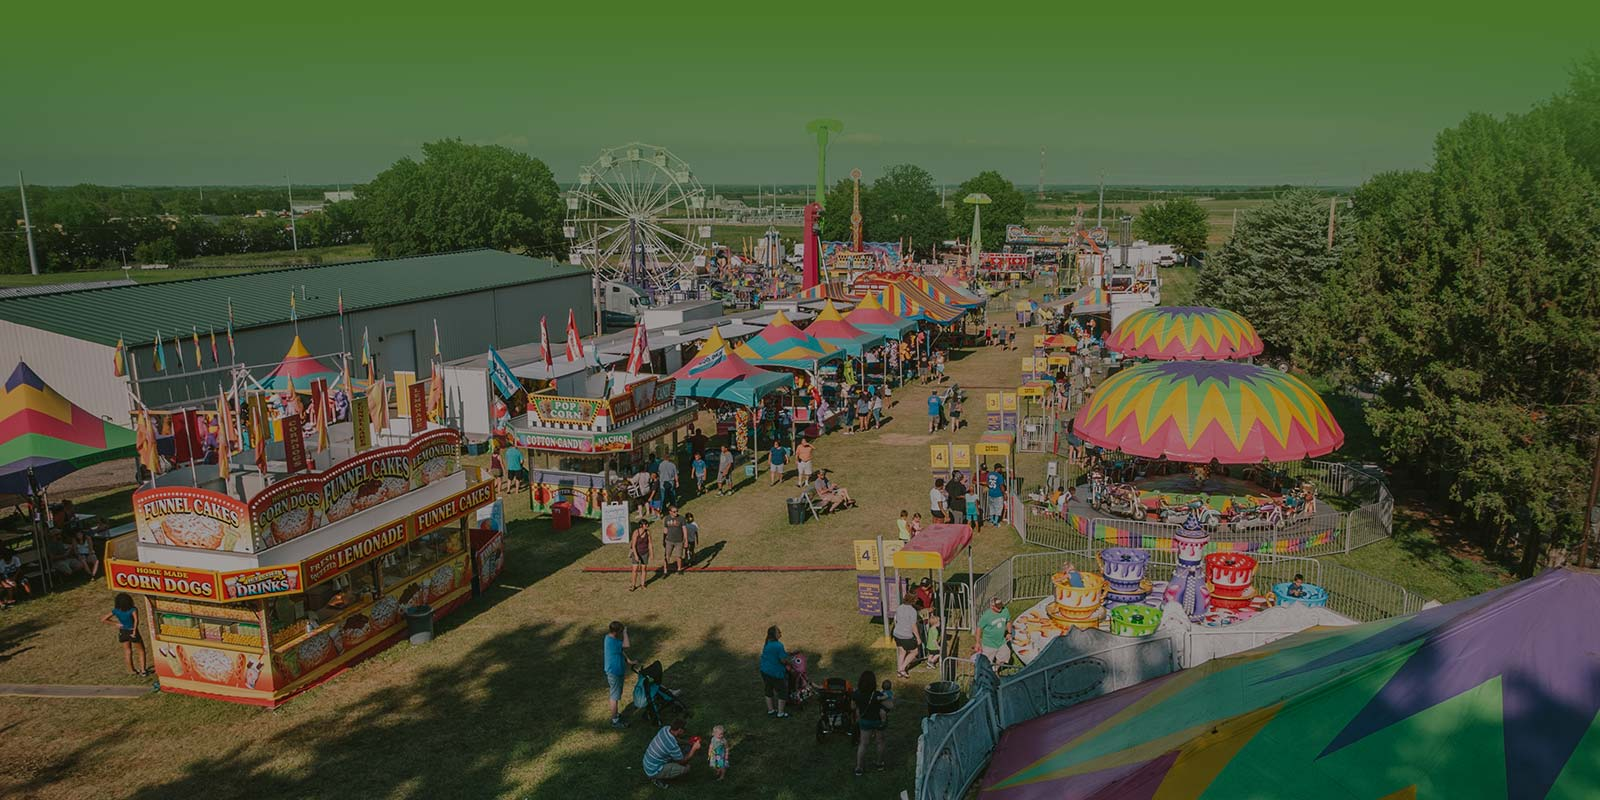 Douglas County Fair Free Fair In Lawrence Kansas